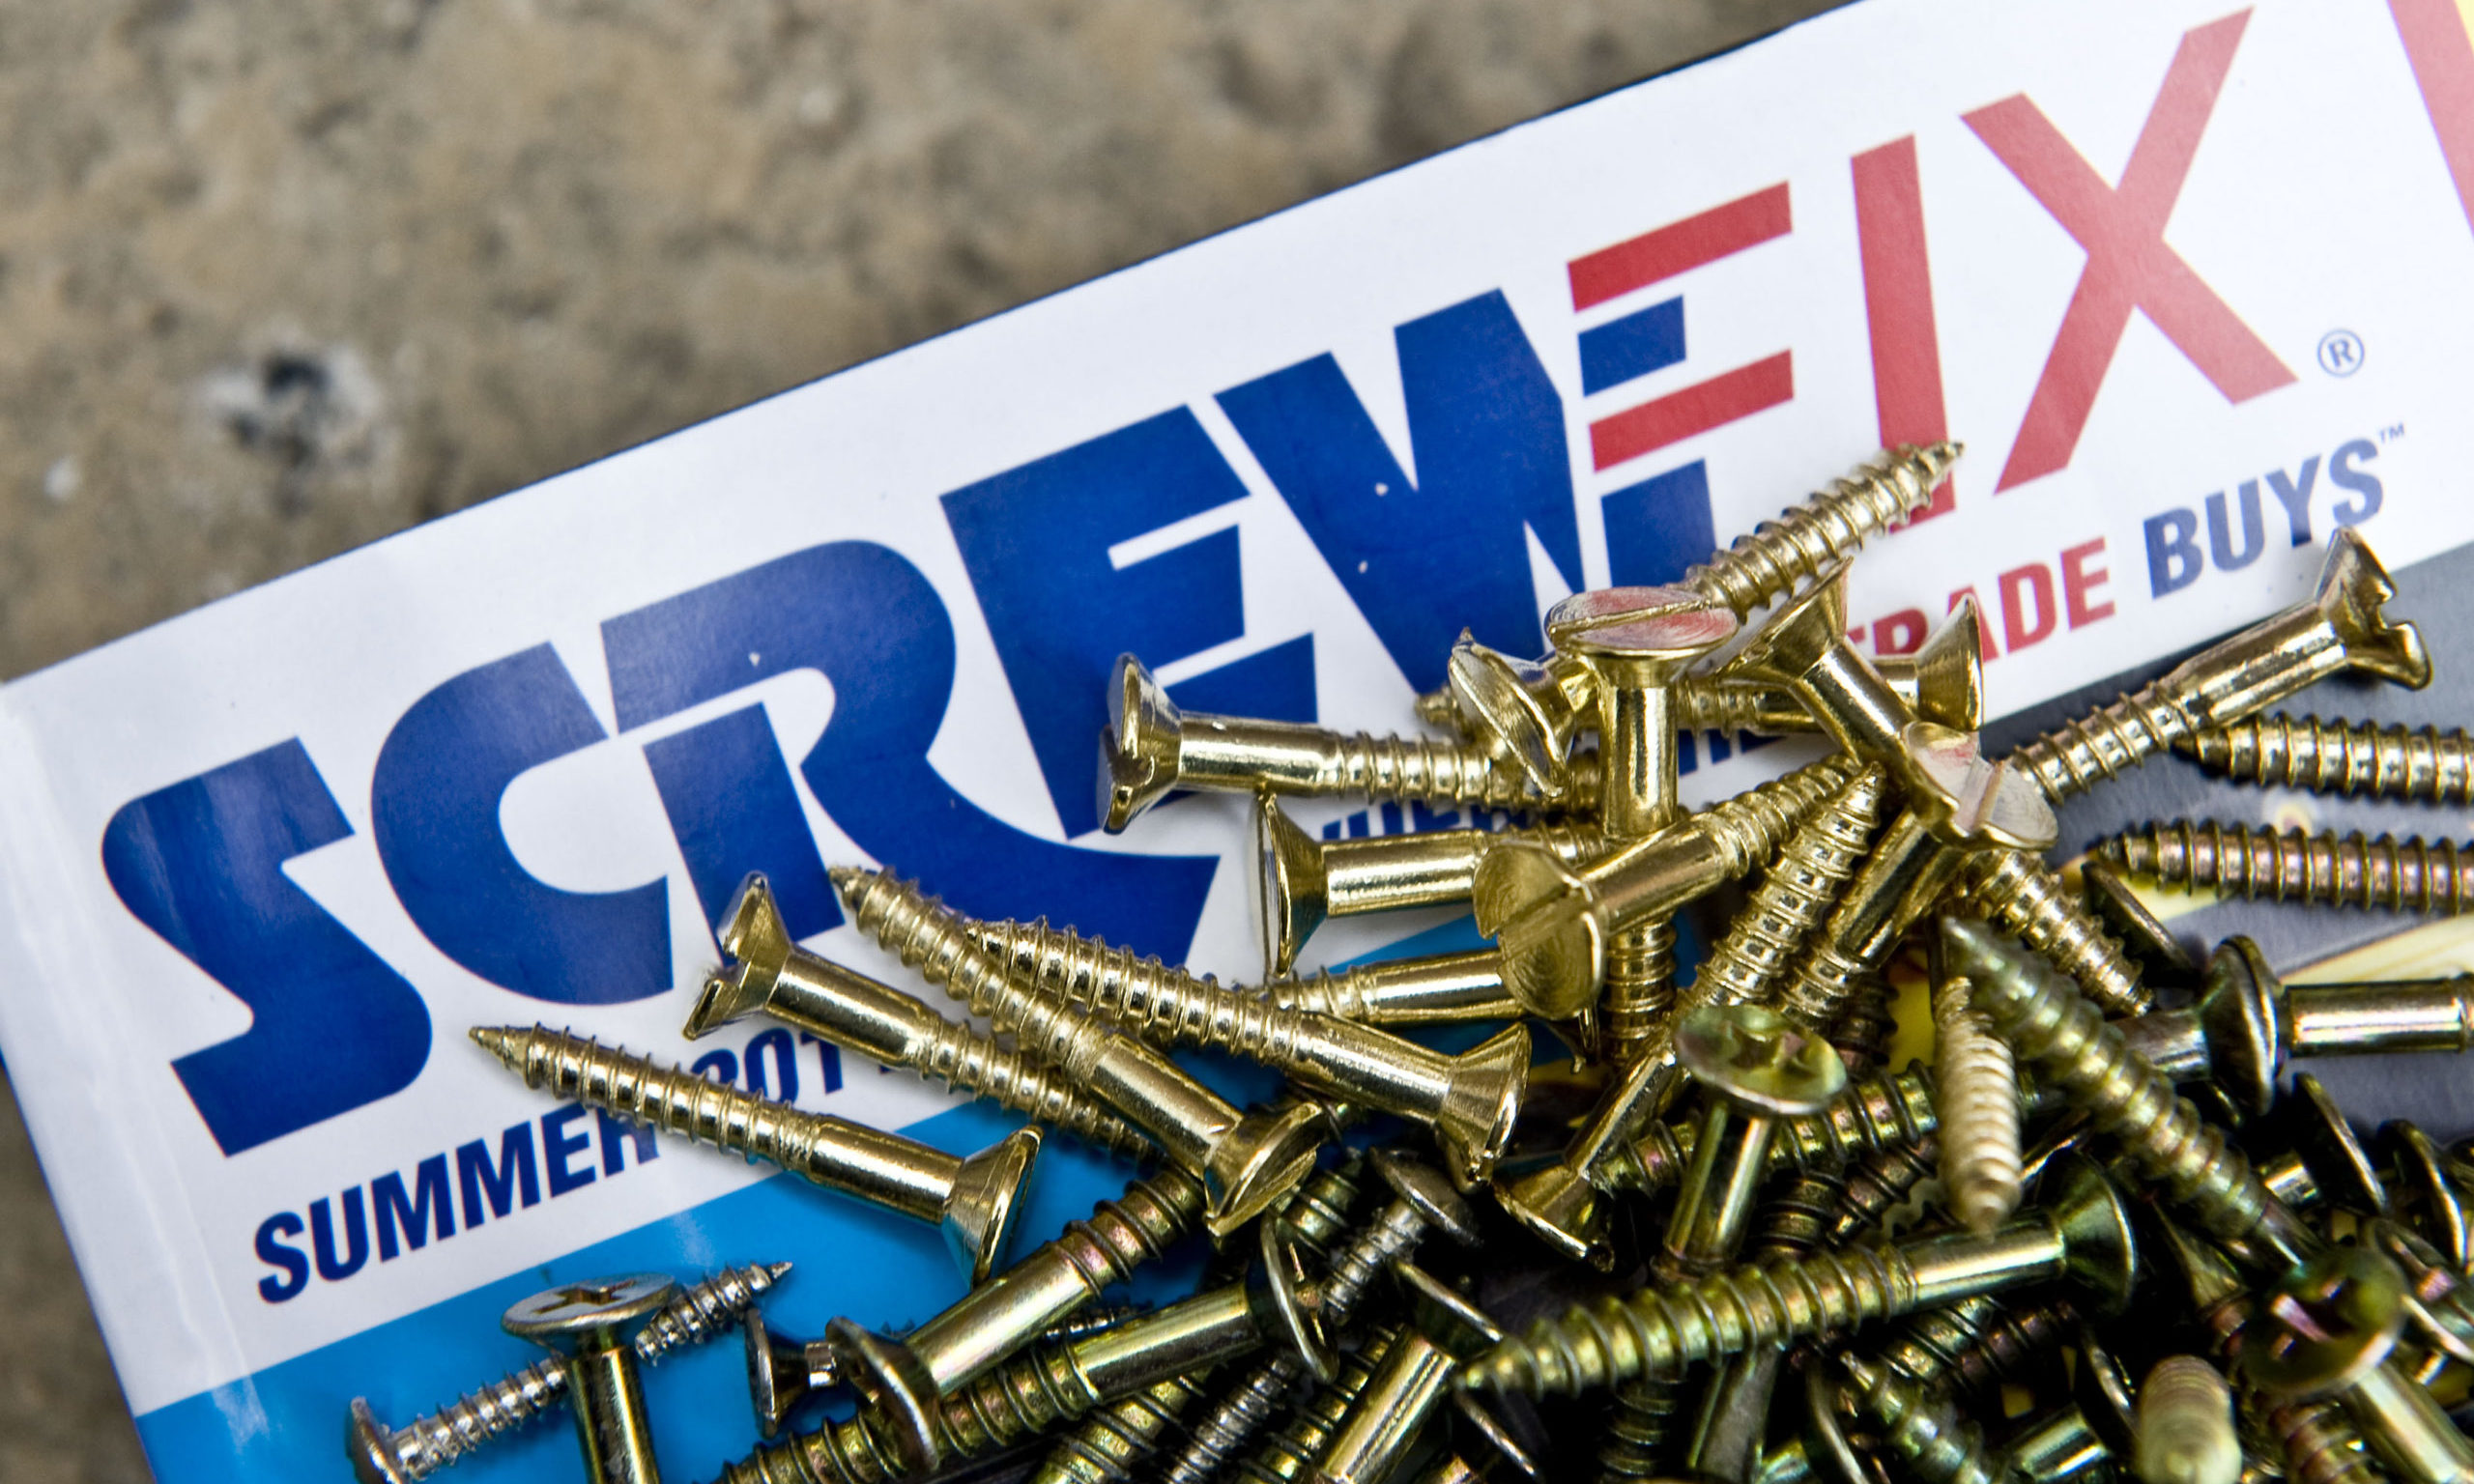 Screwfix, owned by Kingfisher which is a ftse 100 company. PRESS ASSOCIATION photo. Picture date: Friday 28th July 2011. Photo credit should read: Ian West/PA